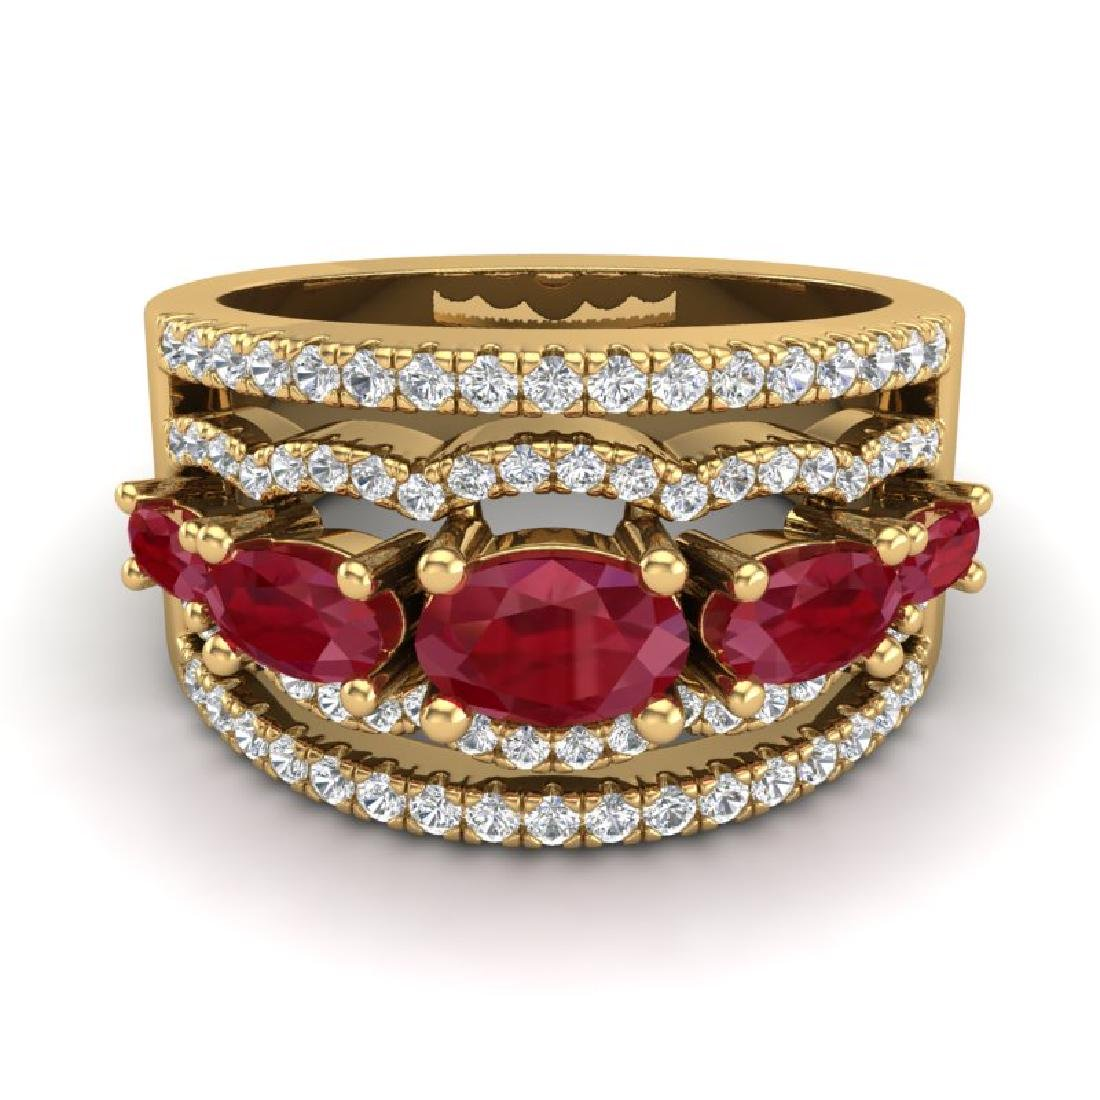 2.25 CTW Ruby & Micro Pave VS/SI Diamond Designer Ring